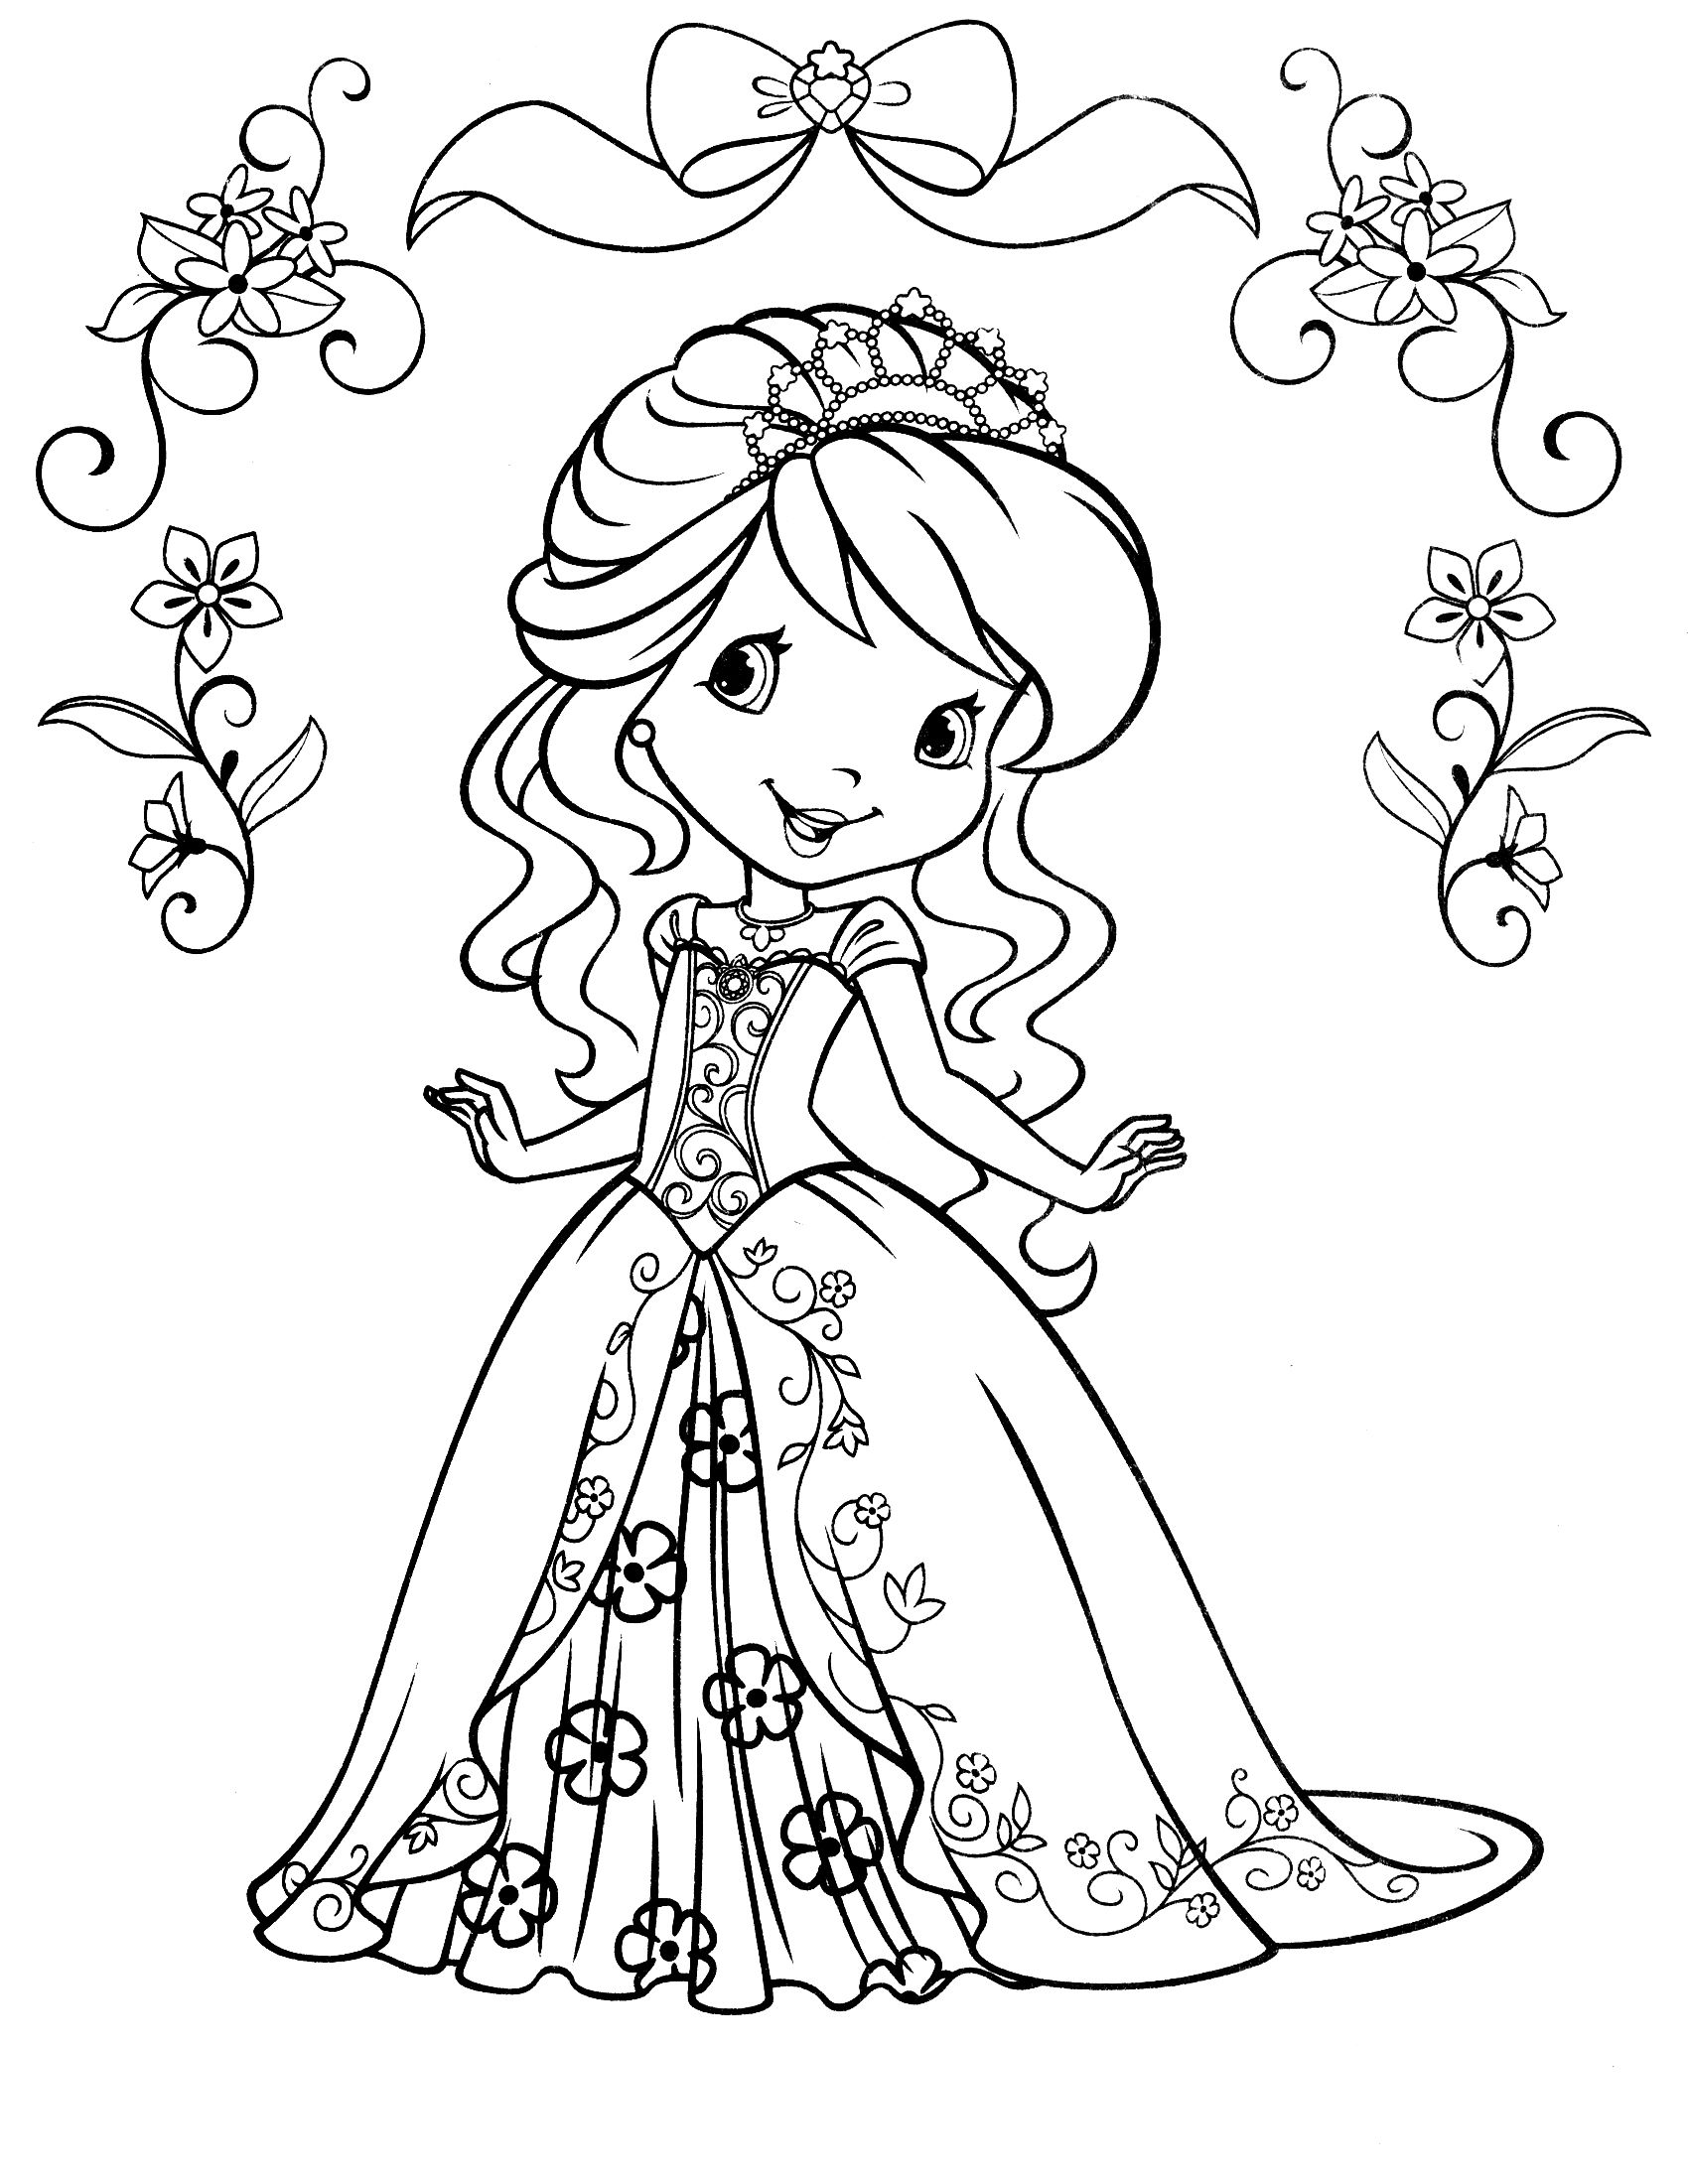 Orange Blossom Mermaid Coloring Pages Strawberry Shortcake Coloring Pages Princess Coloring Pages